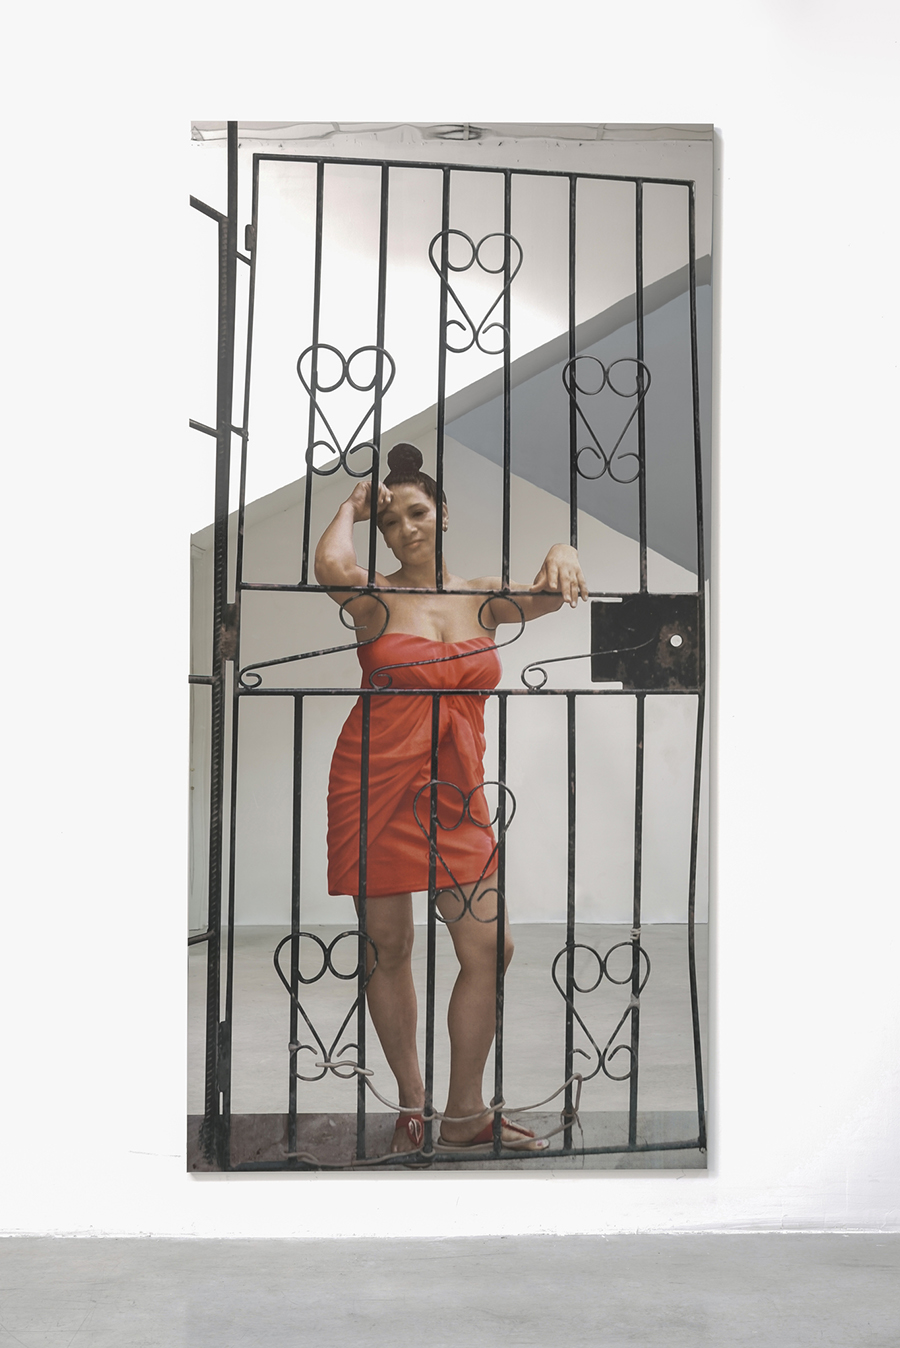 Against the background of a white room, a life-size young woman wearing a strapless red-orange dress faces forward, with her left arm and right elbow resting on the bars of a metal security door.